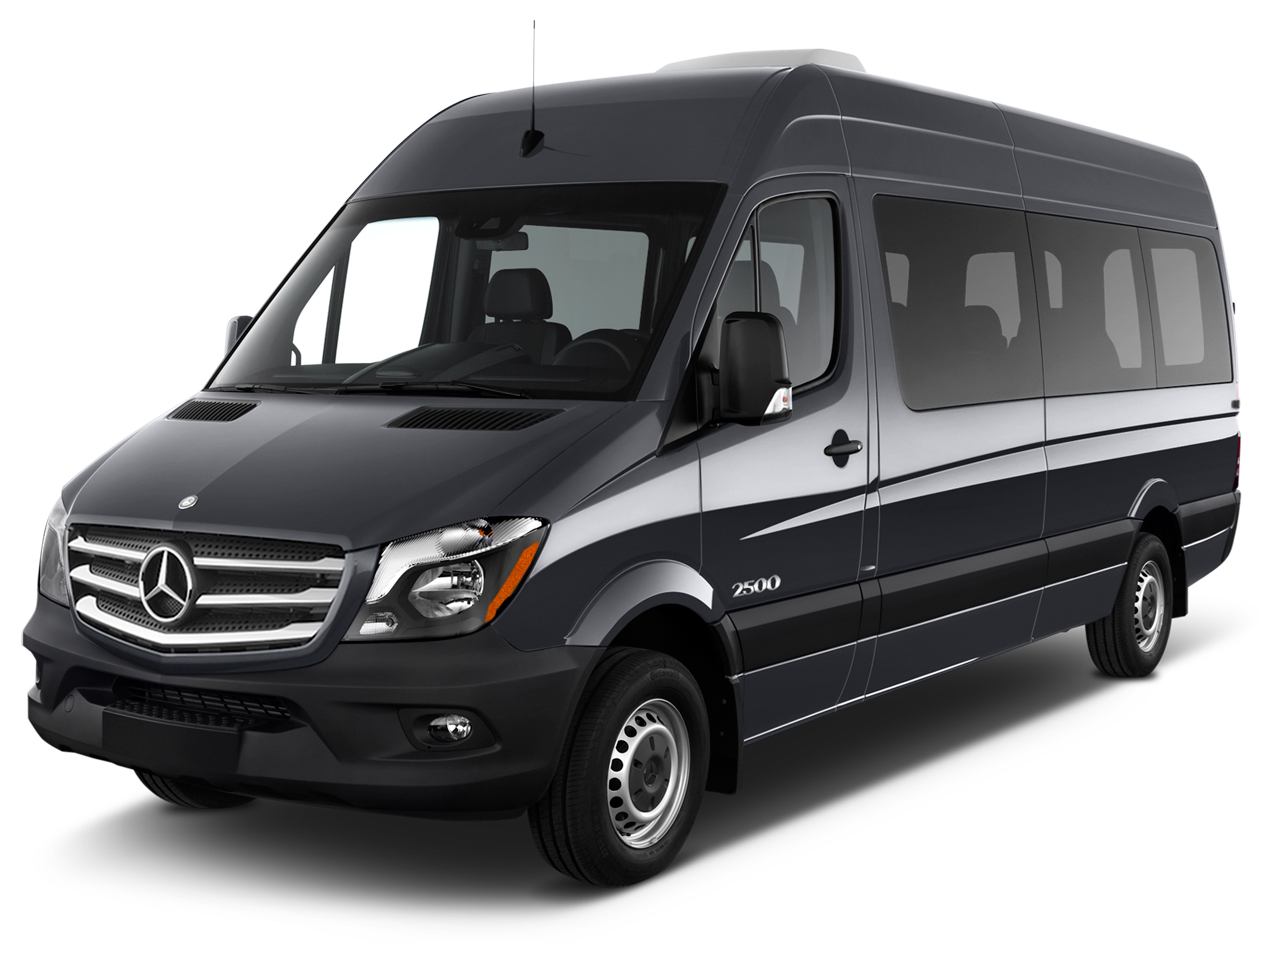 new and used mercedes benz sprinter passenger van prices. Black Bedroom Furniture Sets. Home Design Ideas